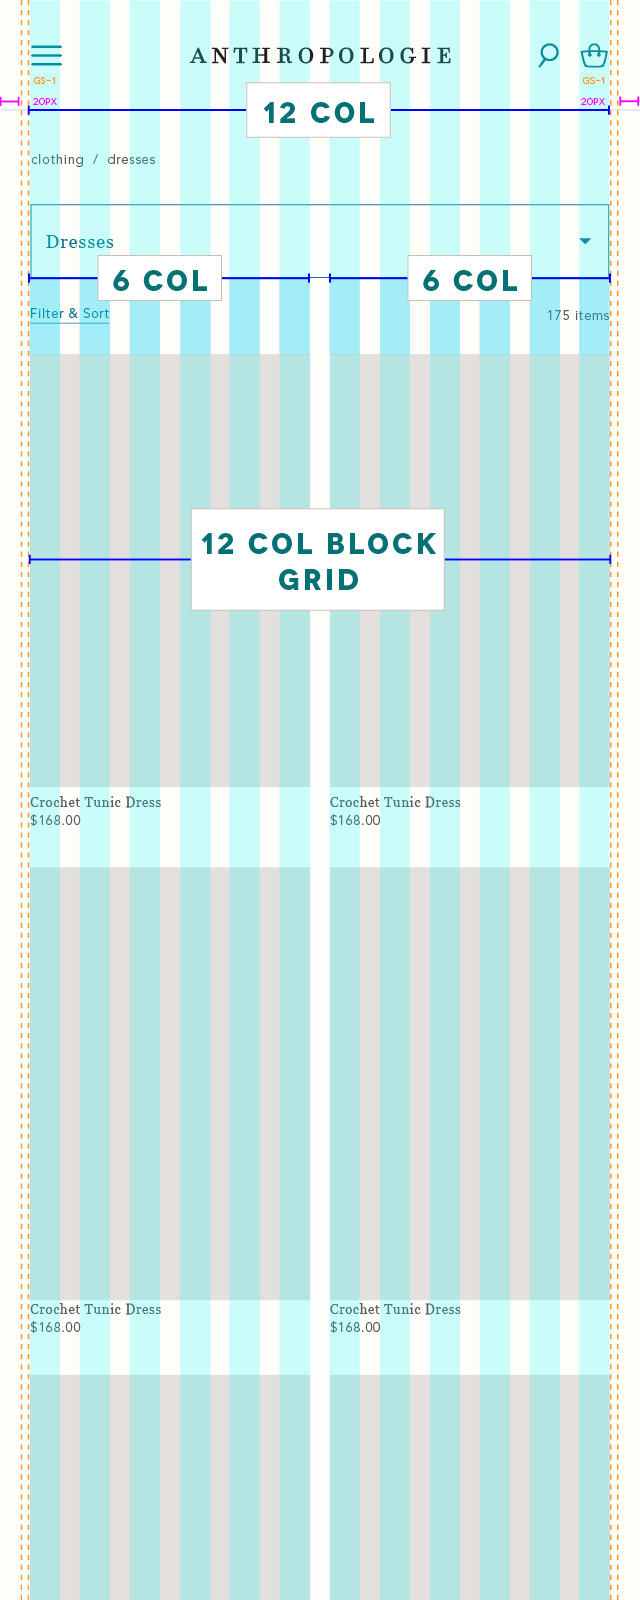 04142016_Category_Grids5.jpg